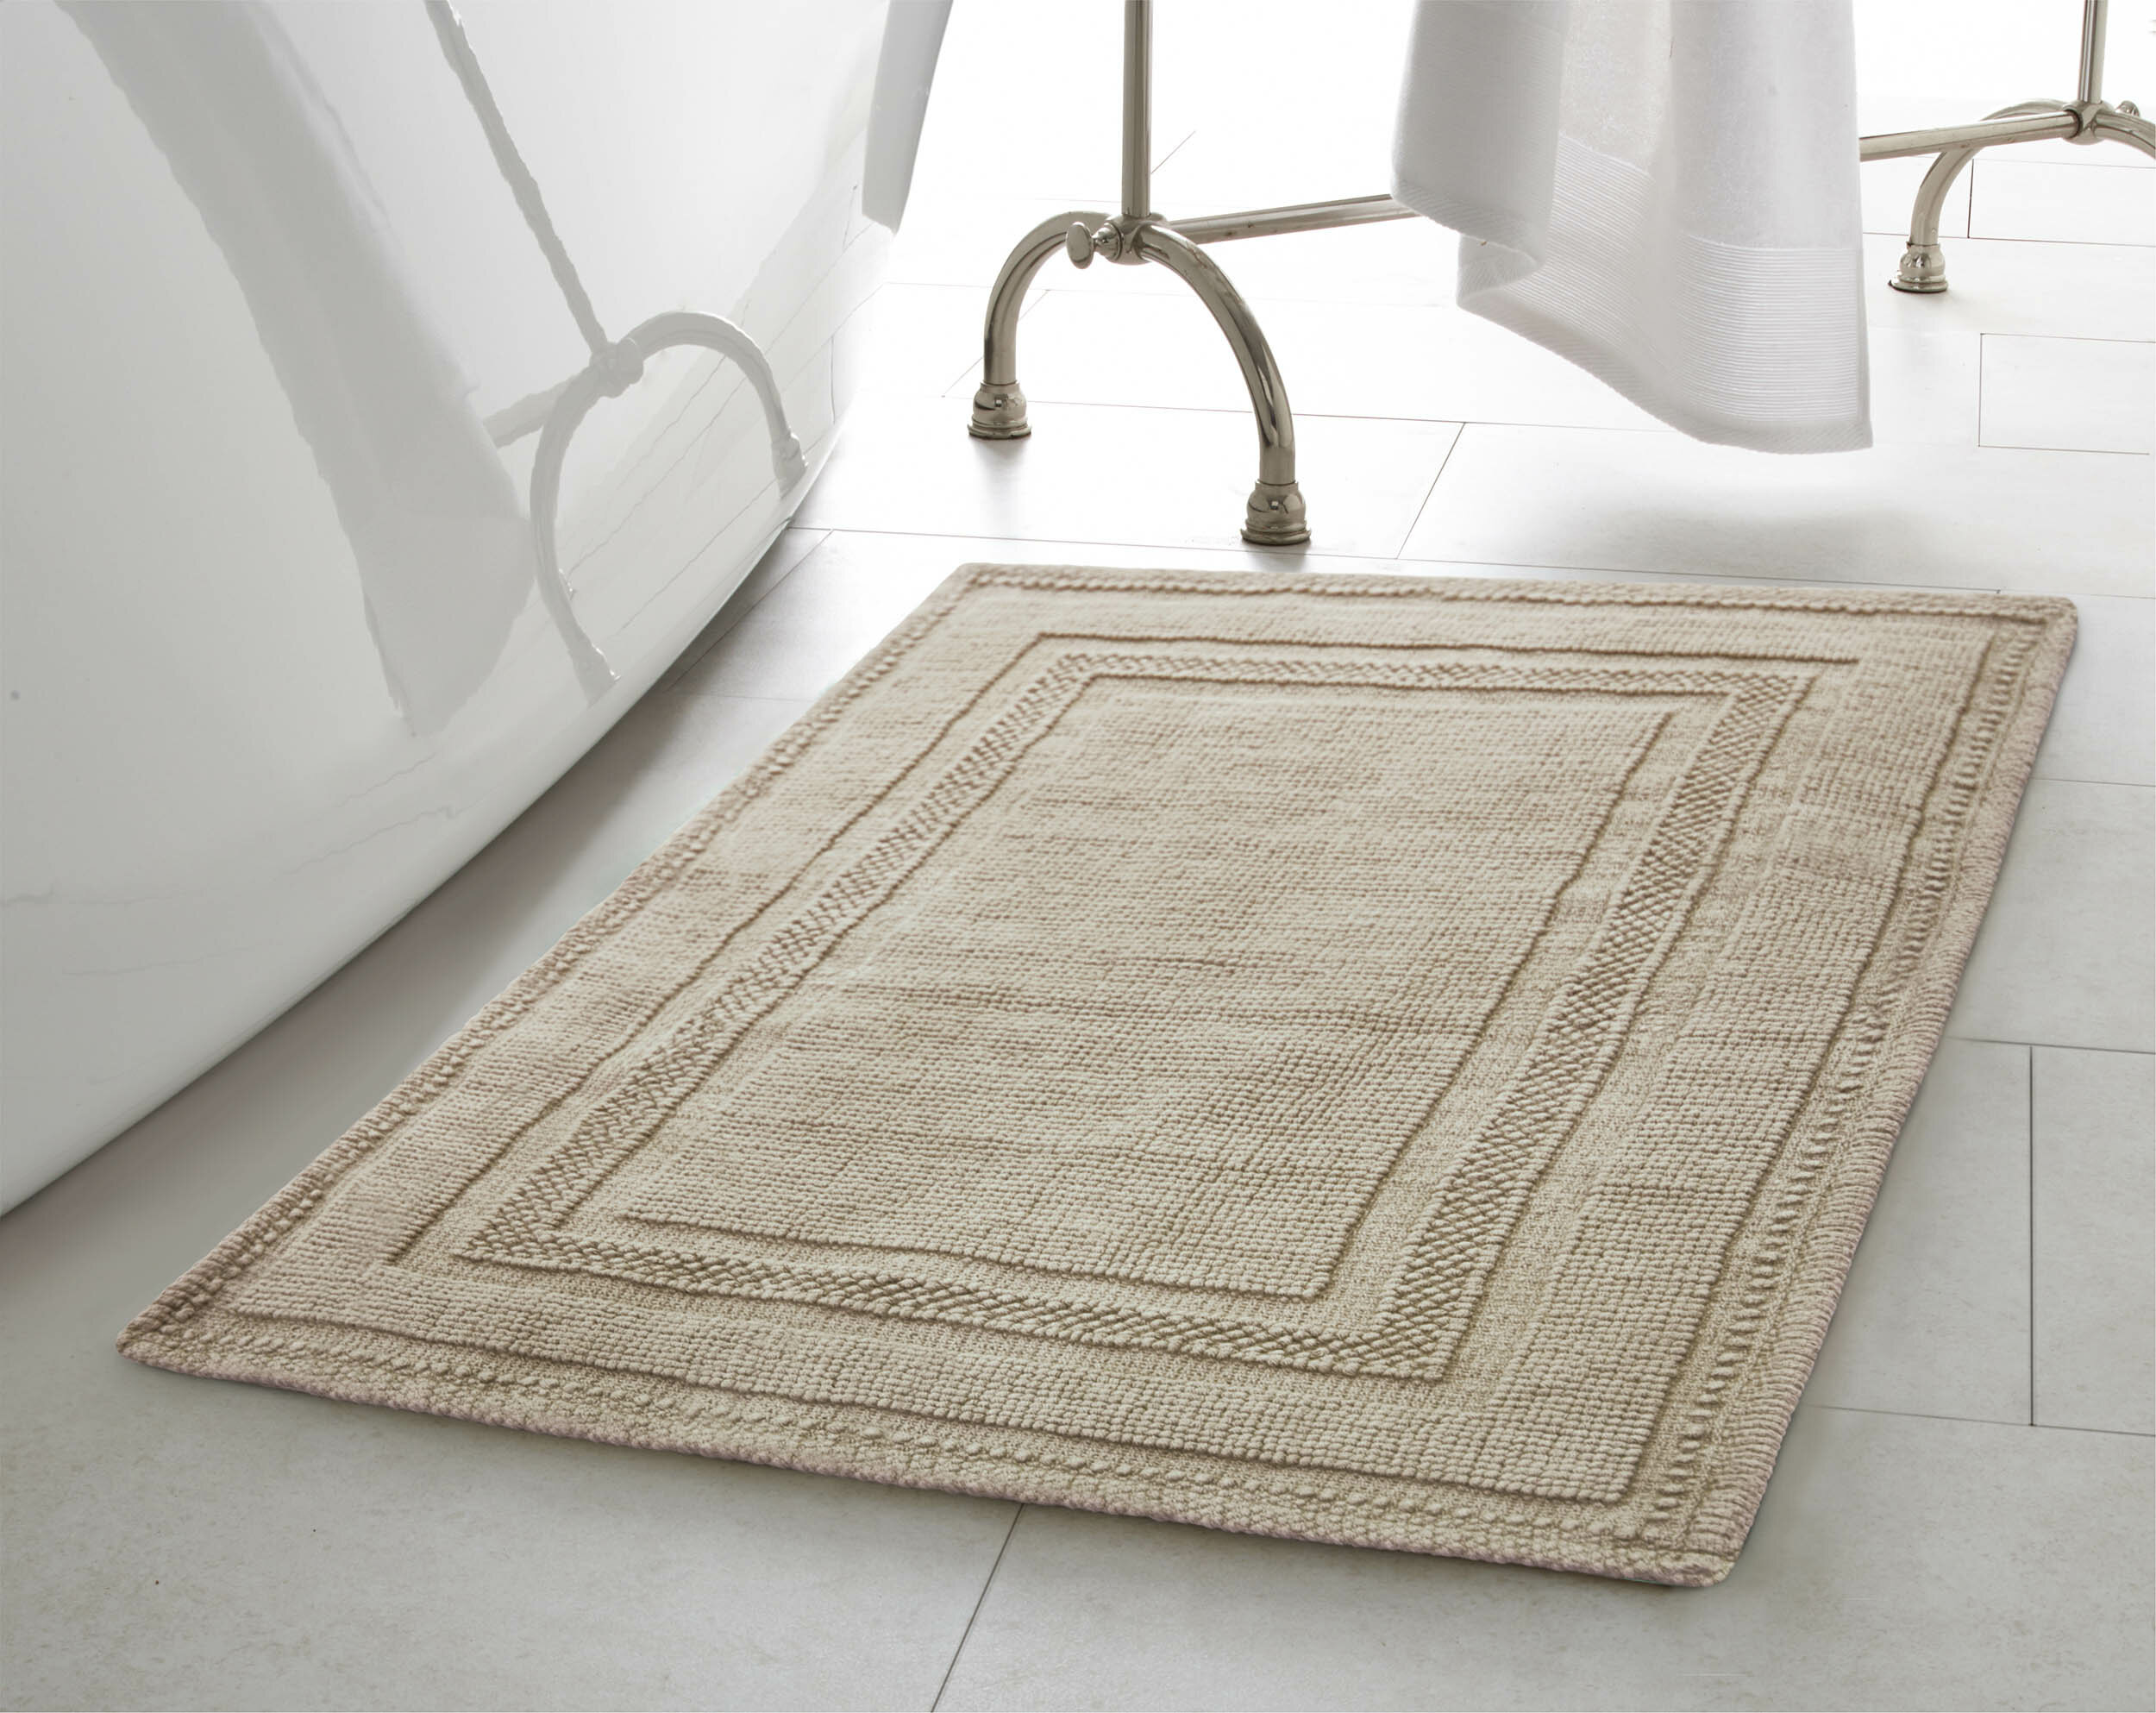 towel home bathroom towels multi citt house mat arrow mats bath